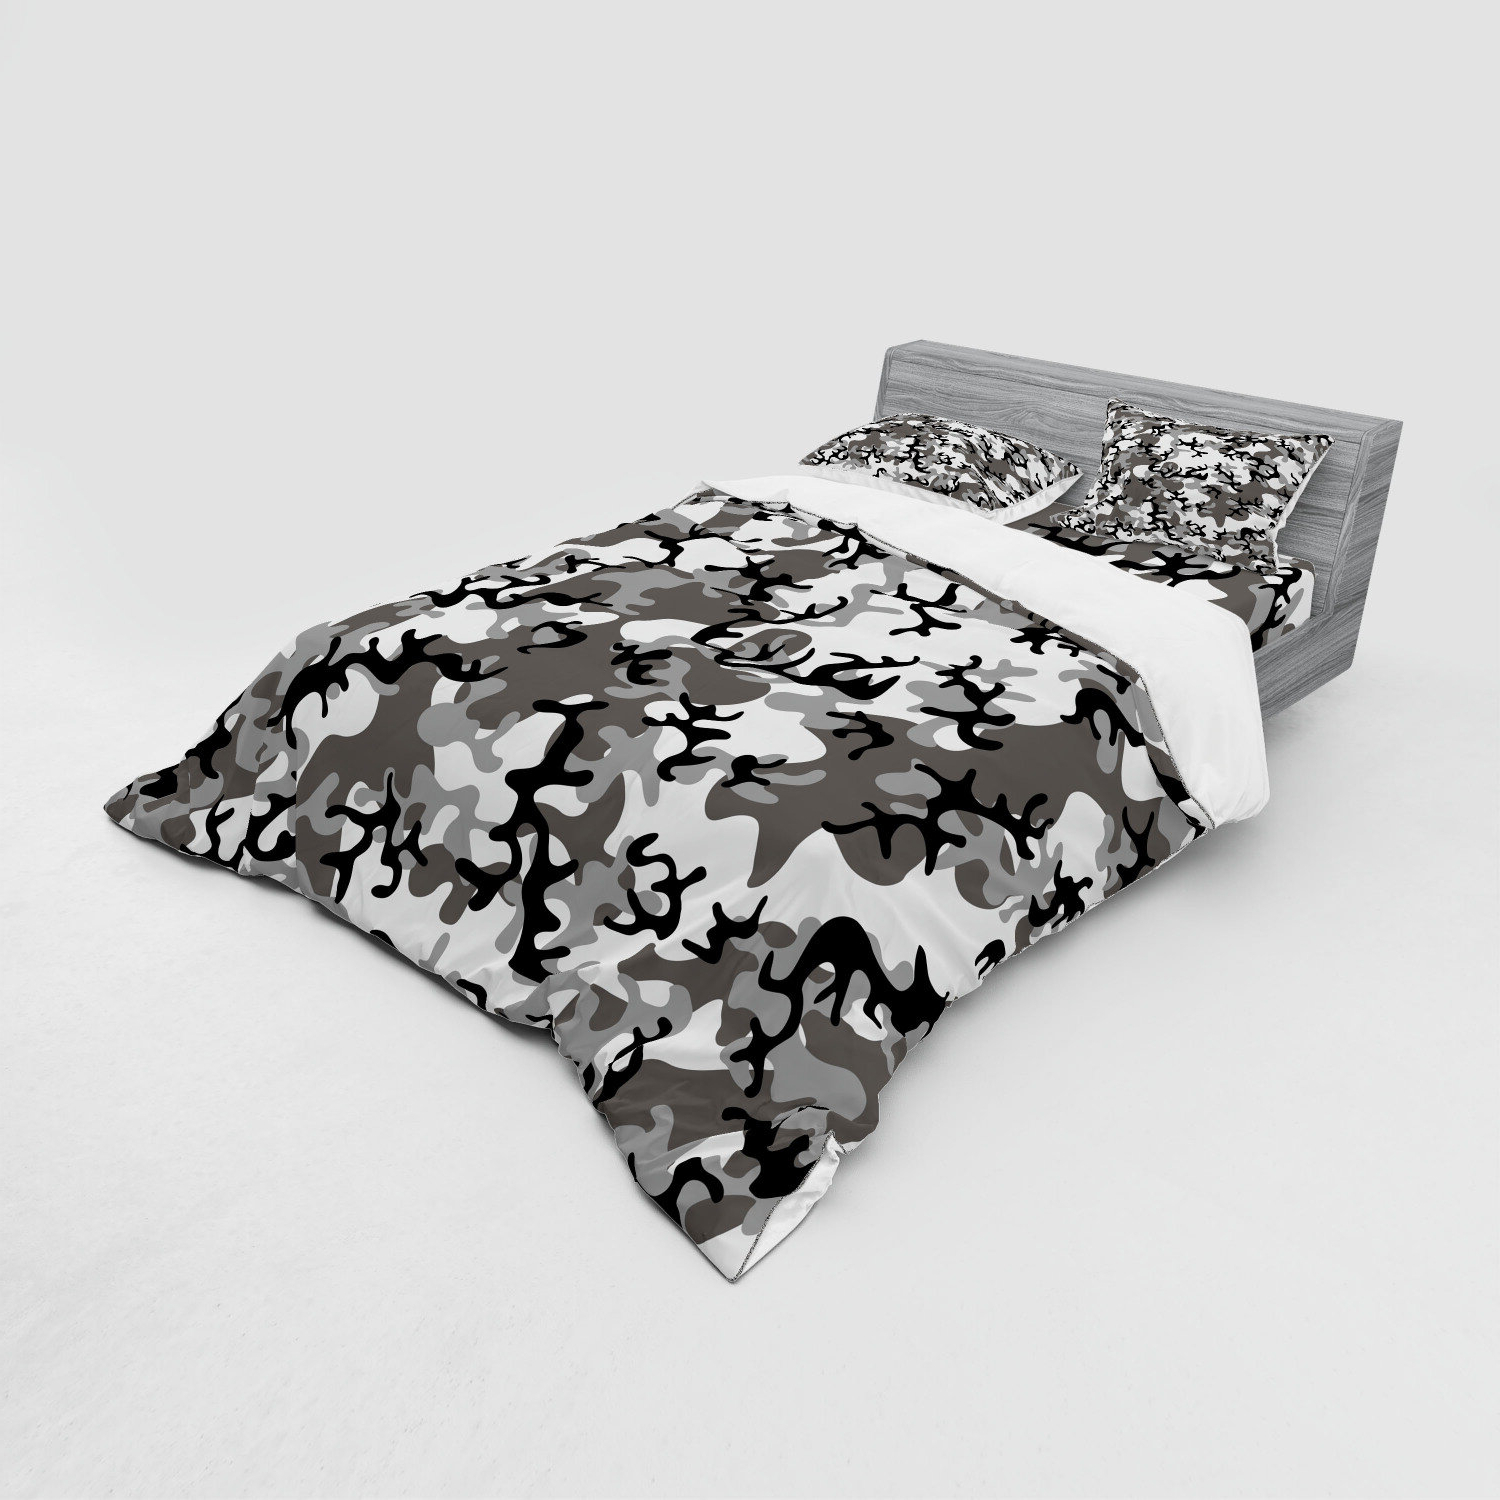 Fashionable Blended Fabric Artifice Ii Wall Hangings Inside Camo Camouflage Concept Concealment Artifice Hiding Force Uniform Fashion Duvet Cover Set (View 20 of 20)